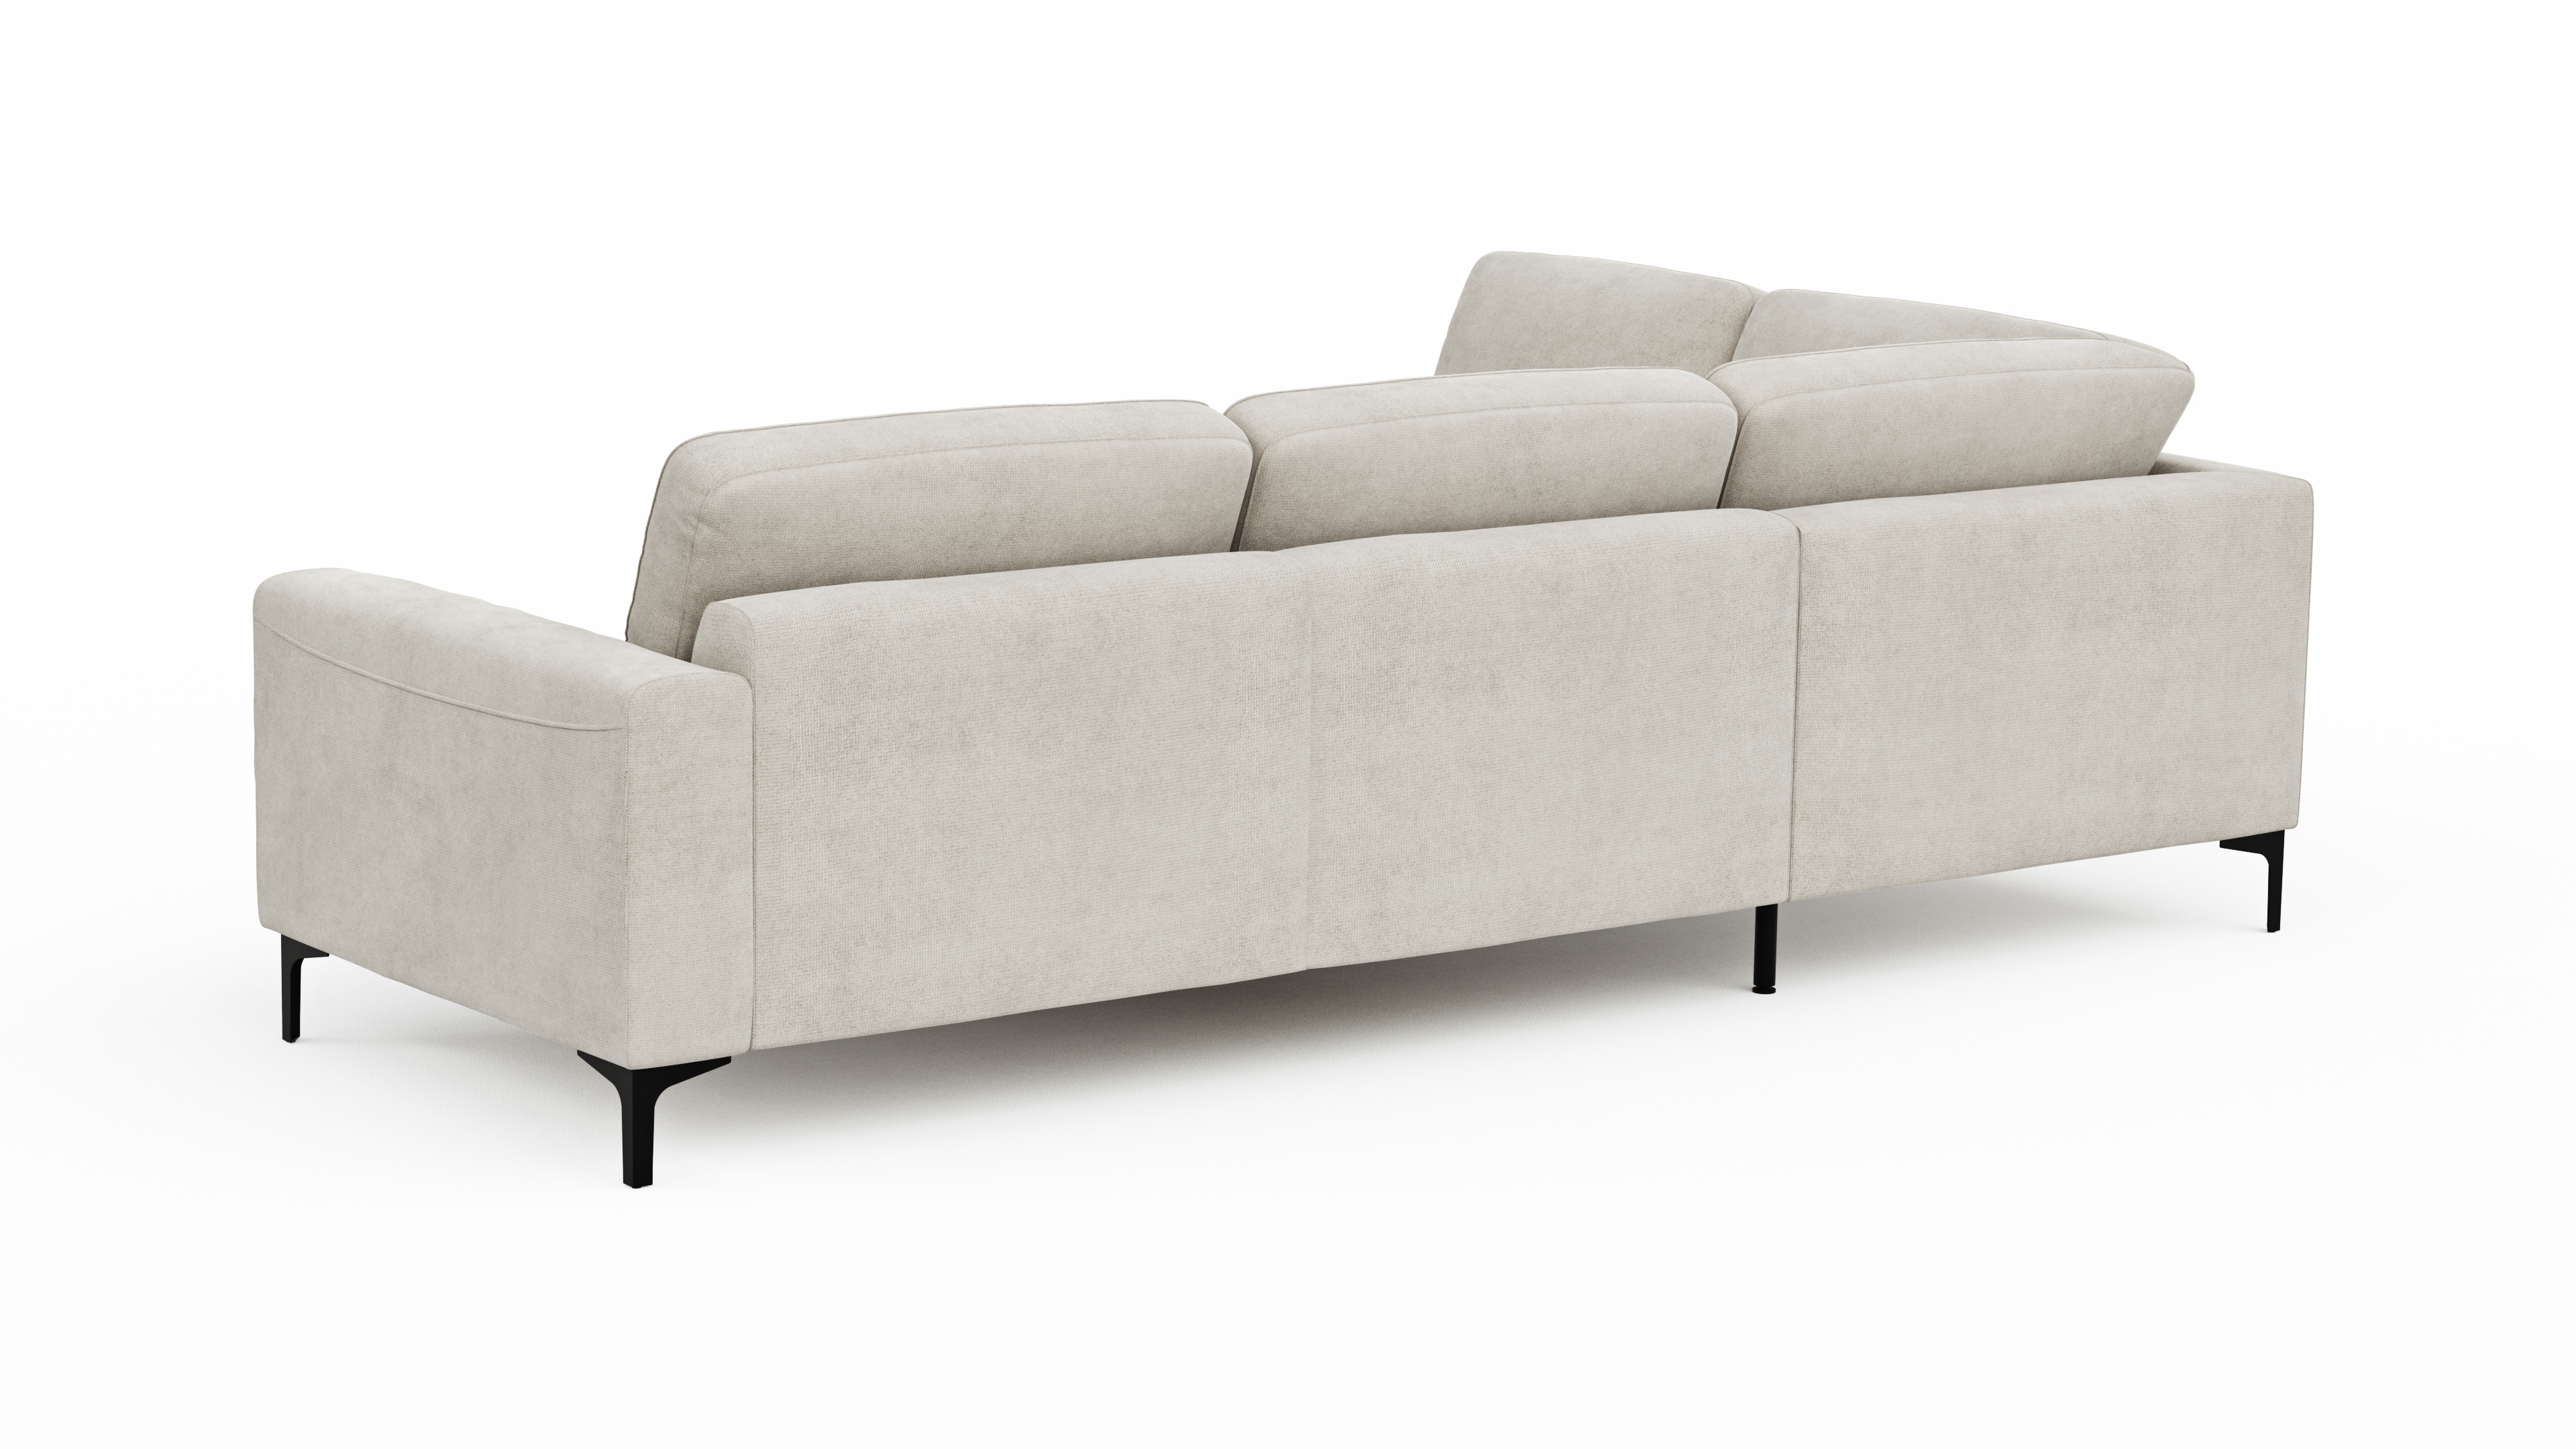 Global Family Ecksofa Oviedo freisteller 3 102376 | Homepoet